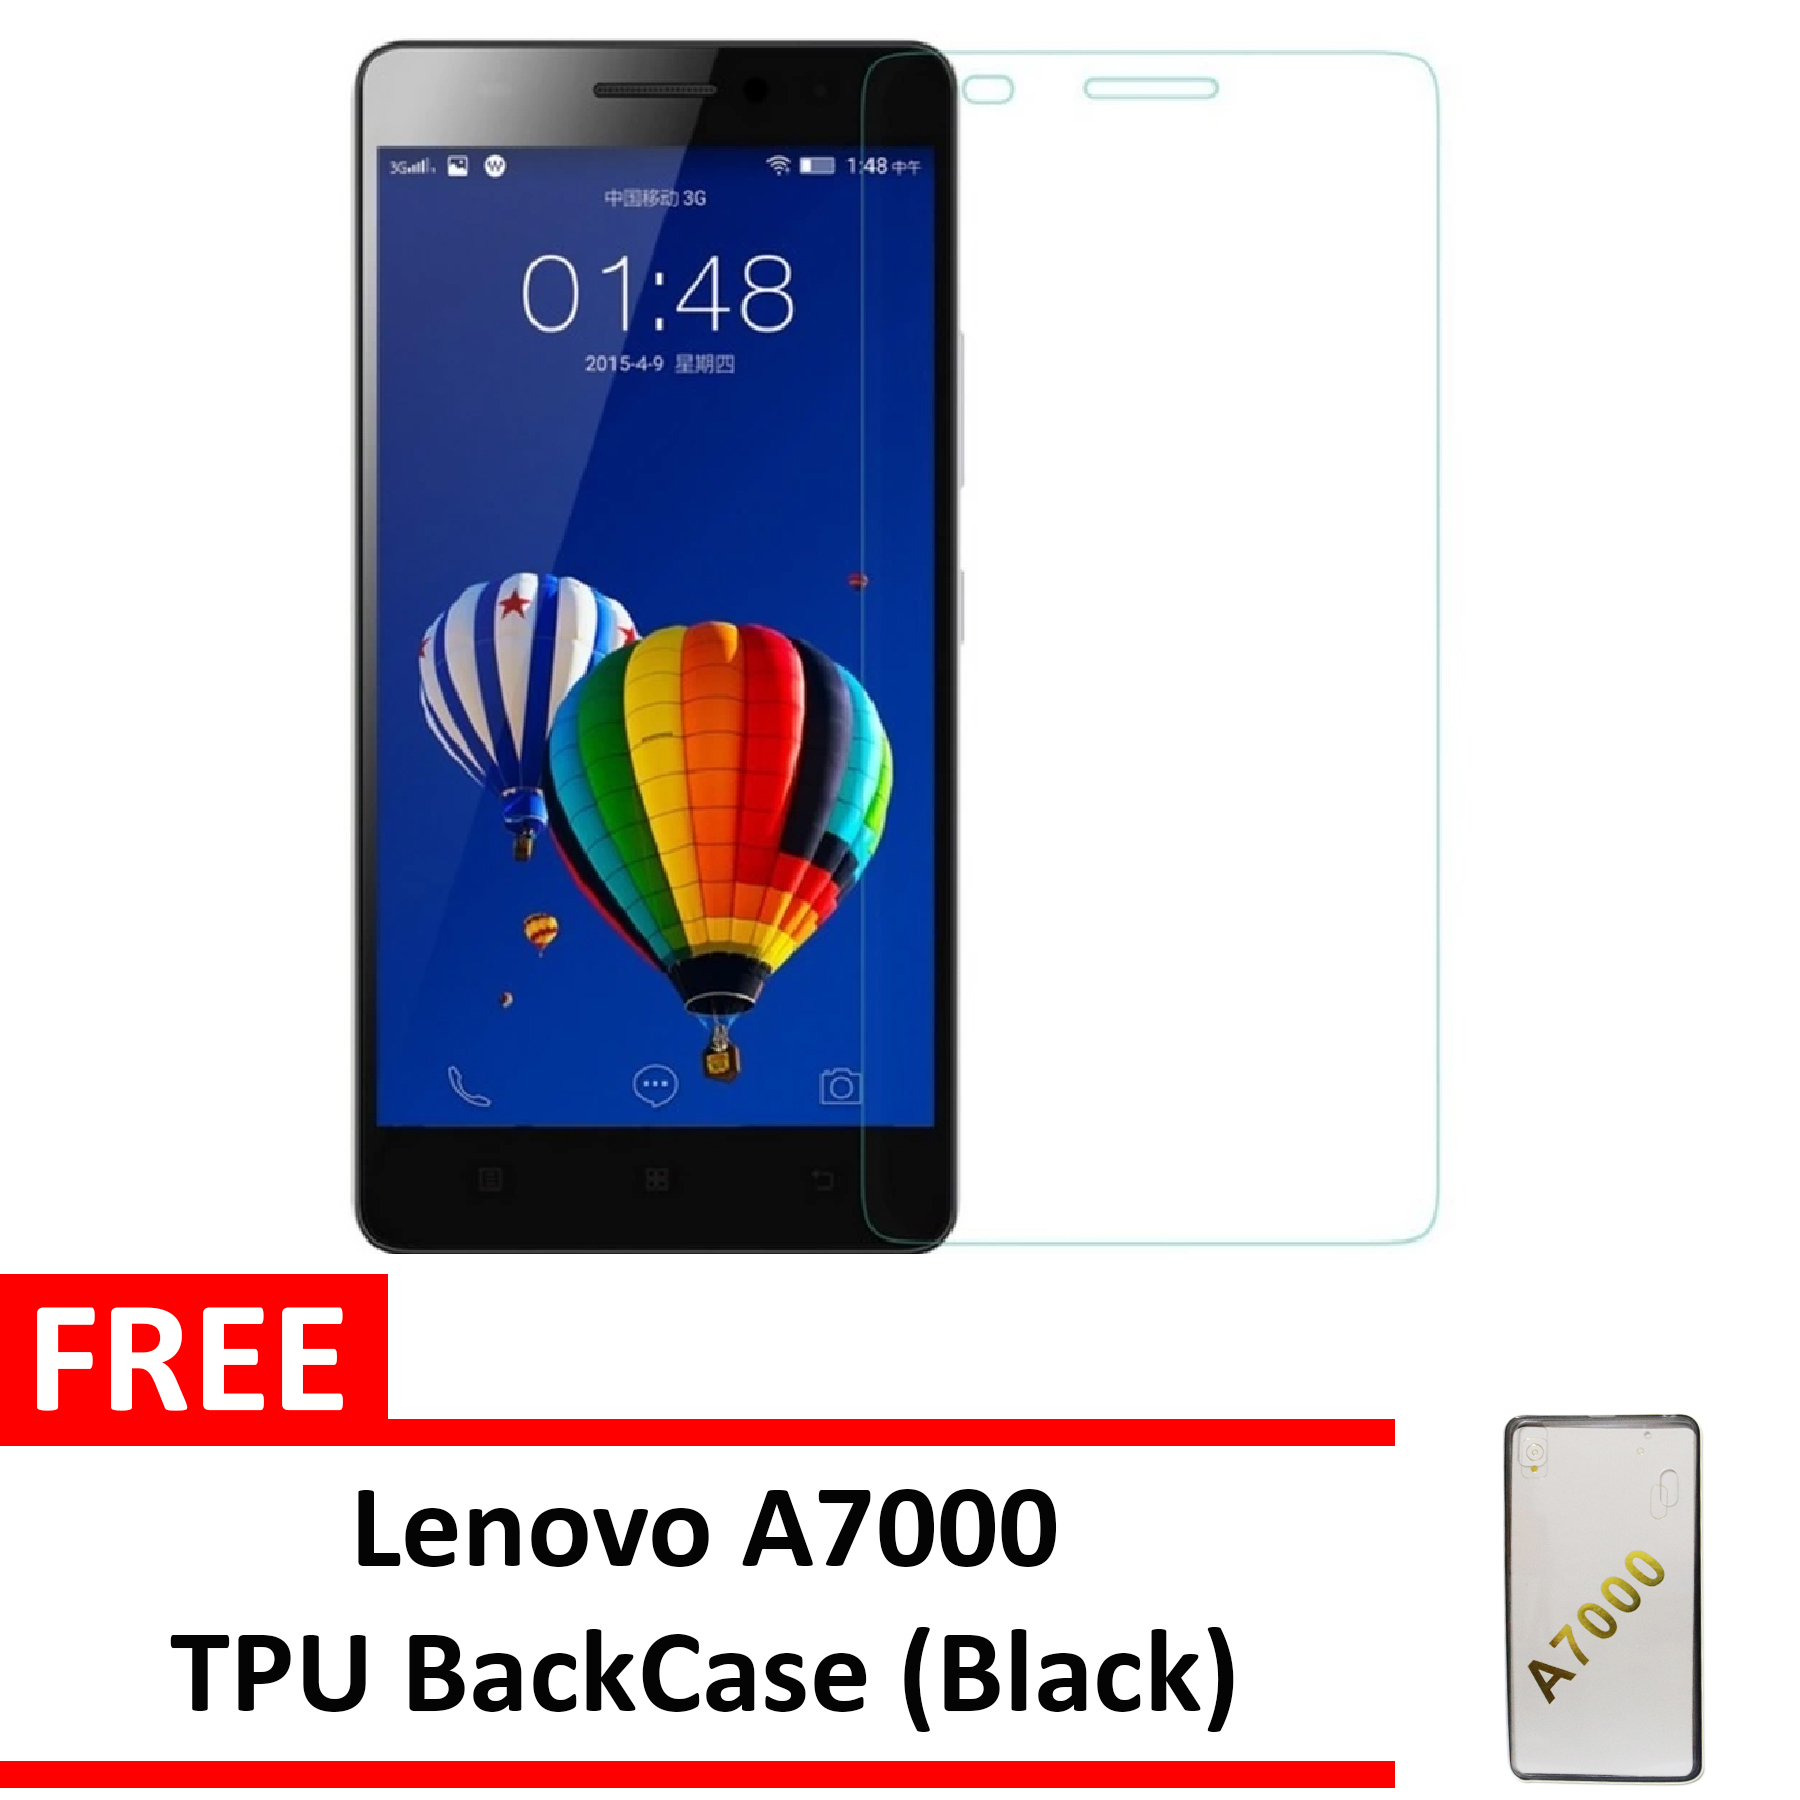 How To Buy Incipio Rubber Back Case For Myphone My89 Dtv Blue With Tempered Glass Premium Screen Protector 9h Untuk Lenovo A7000clear A7000 Clear Free Black